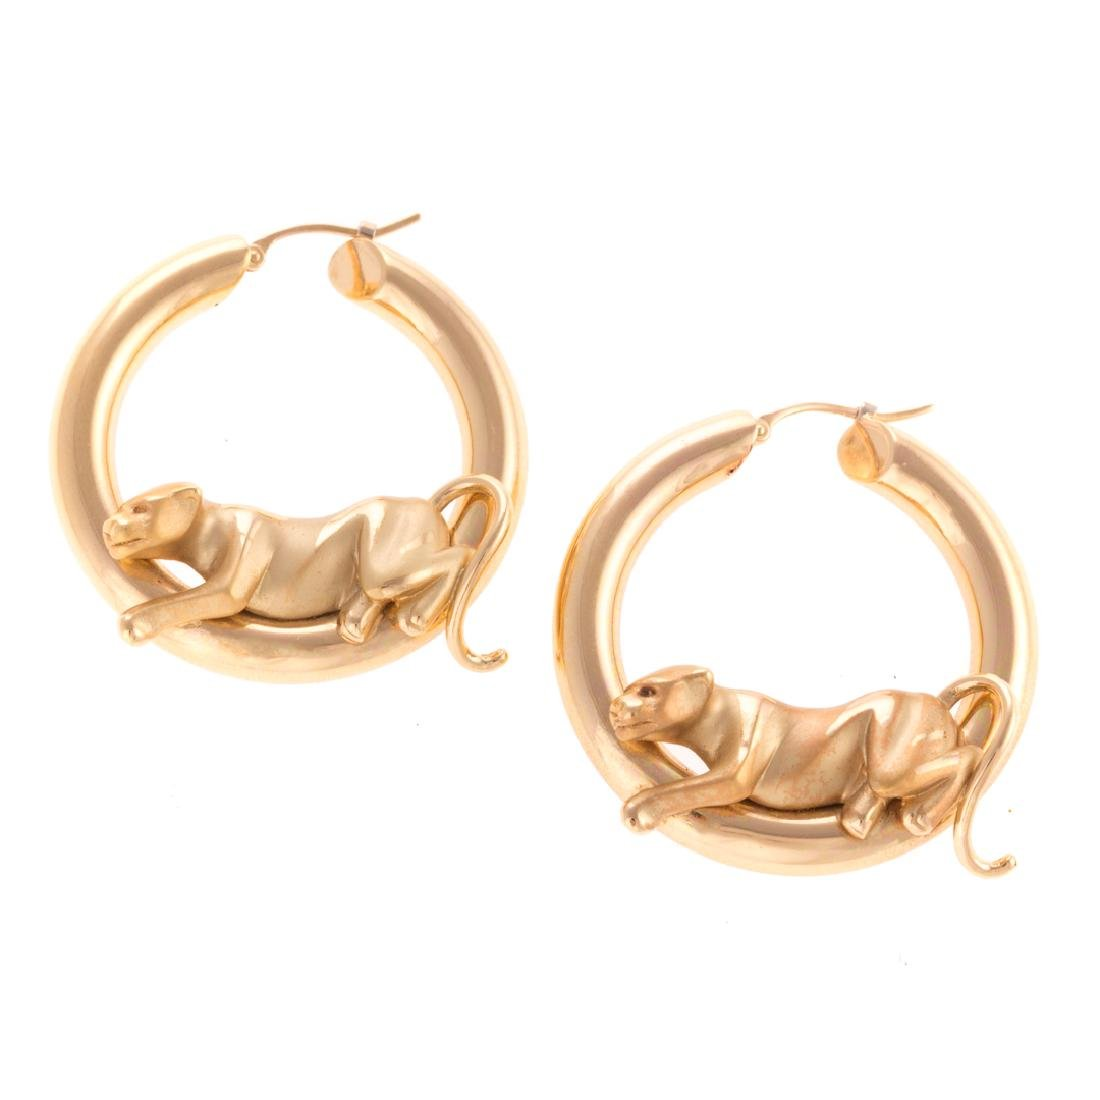 A Pair of 18K Jaguar Hoop Earrings